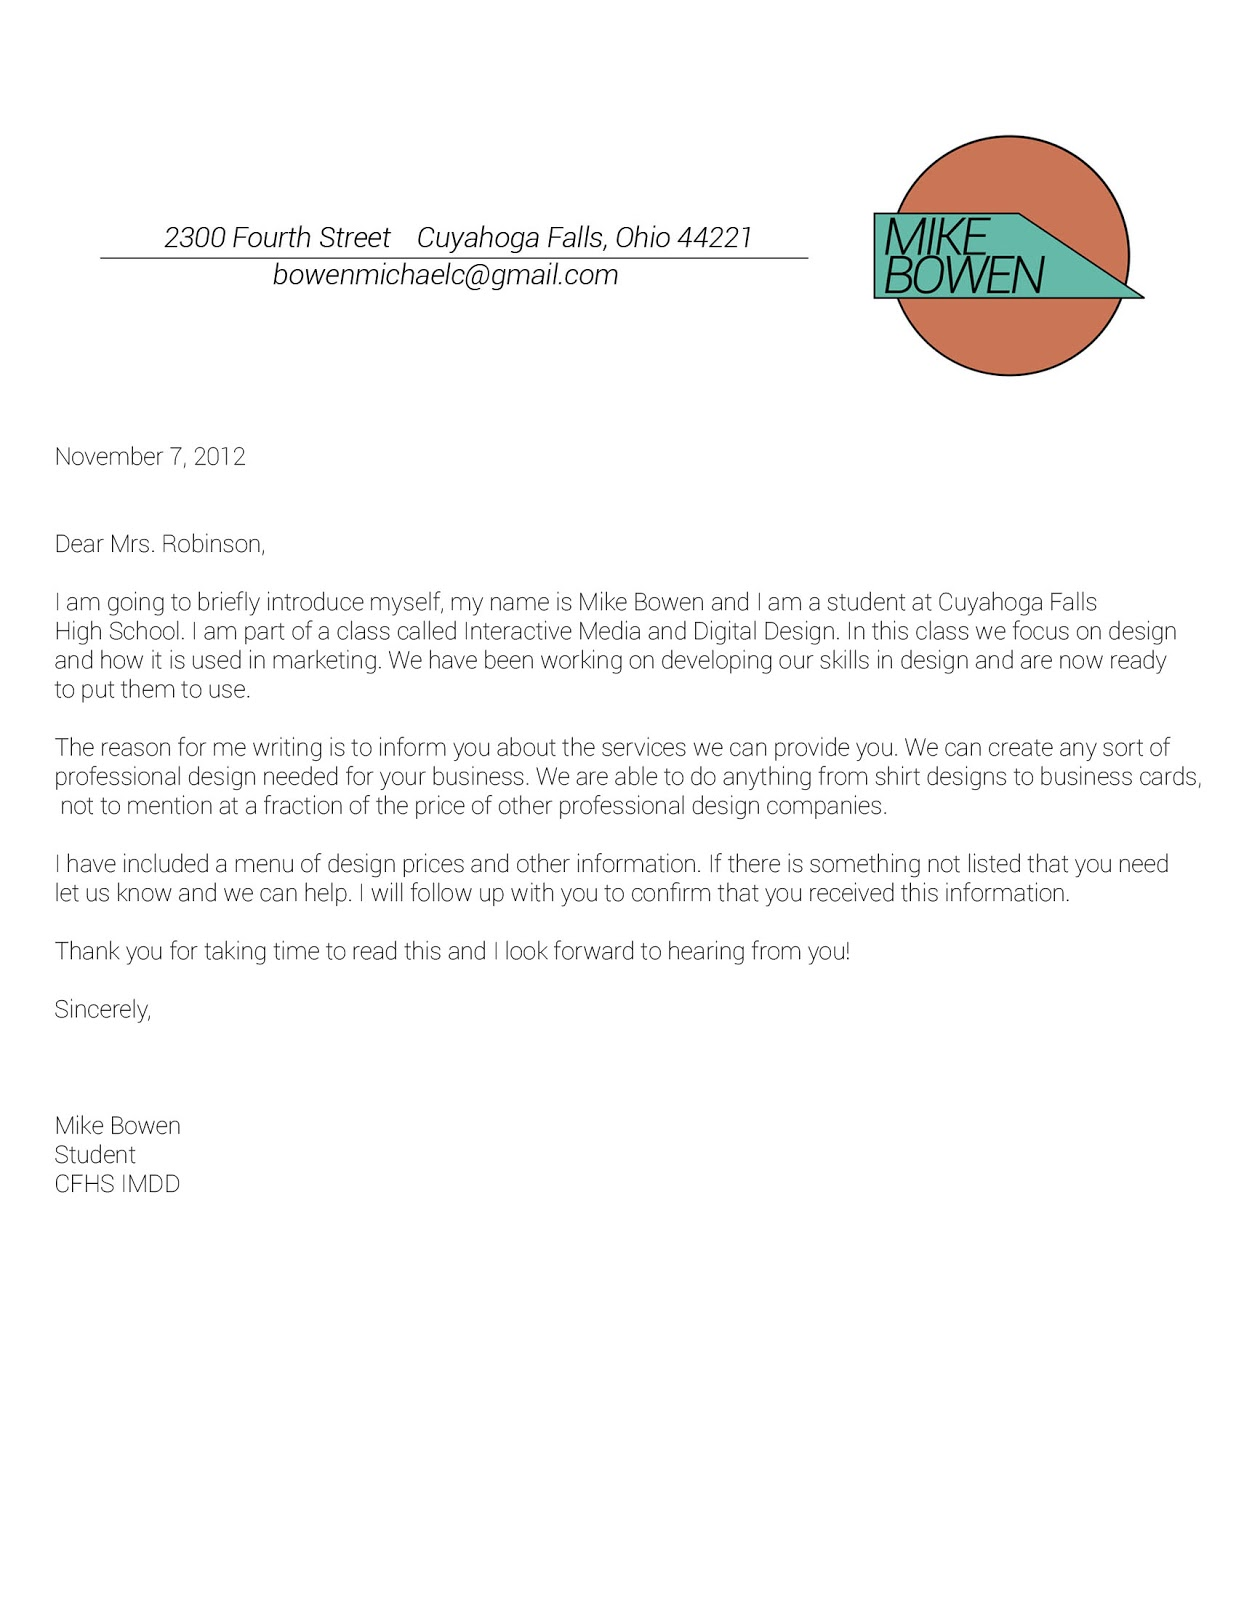 Sample business letter with logo friedricerecipe Gallery